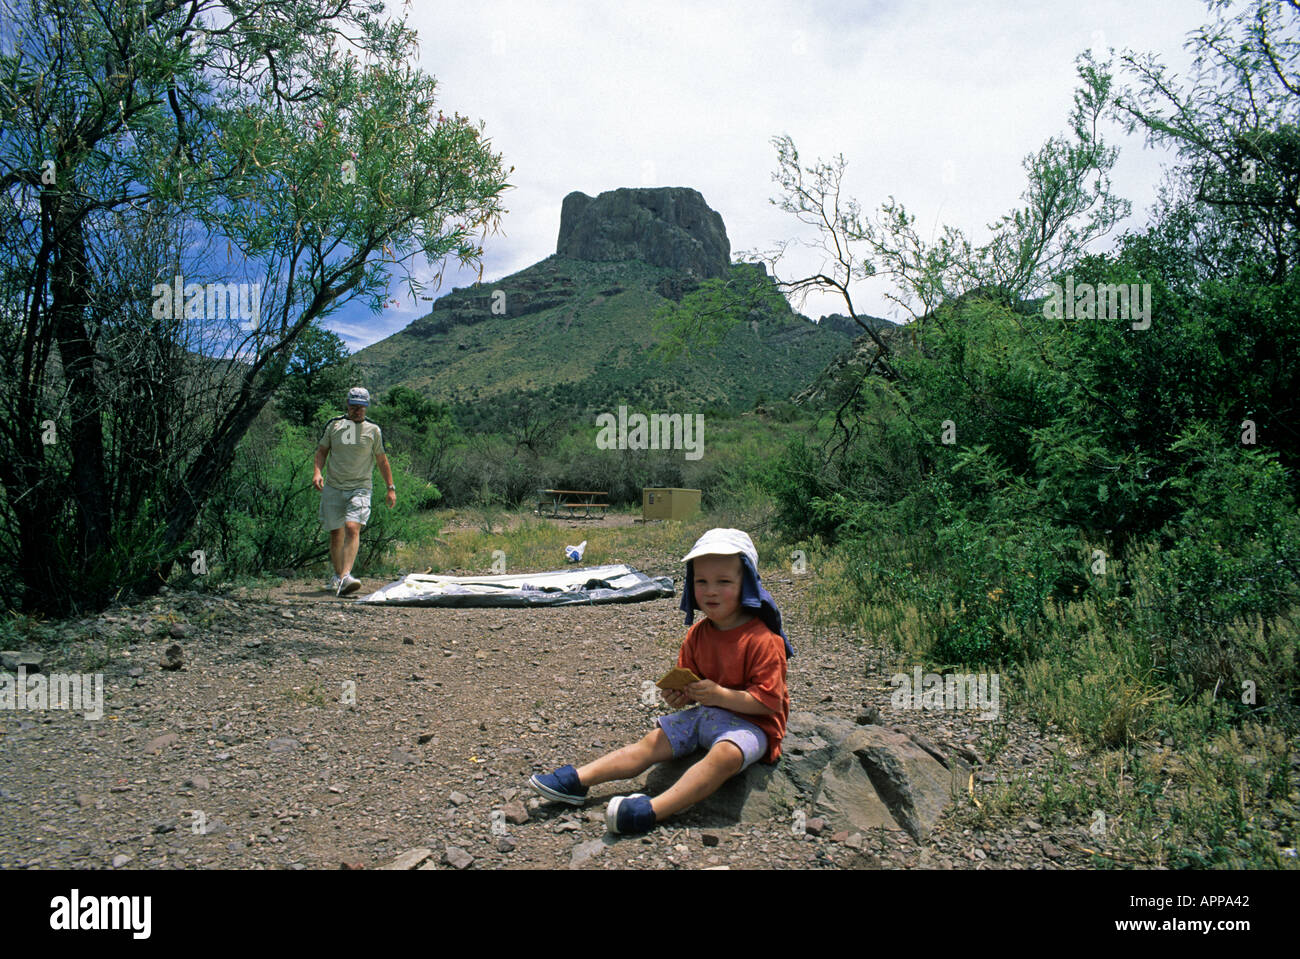 USA United States of America Texas Big Bend Hisos Mountains camp site tent - Stock Image